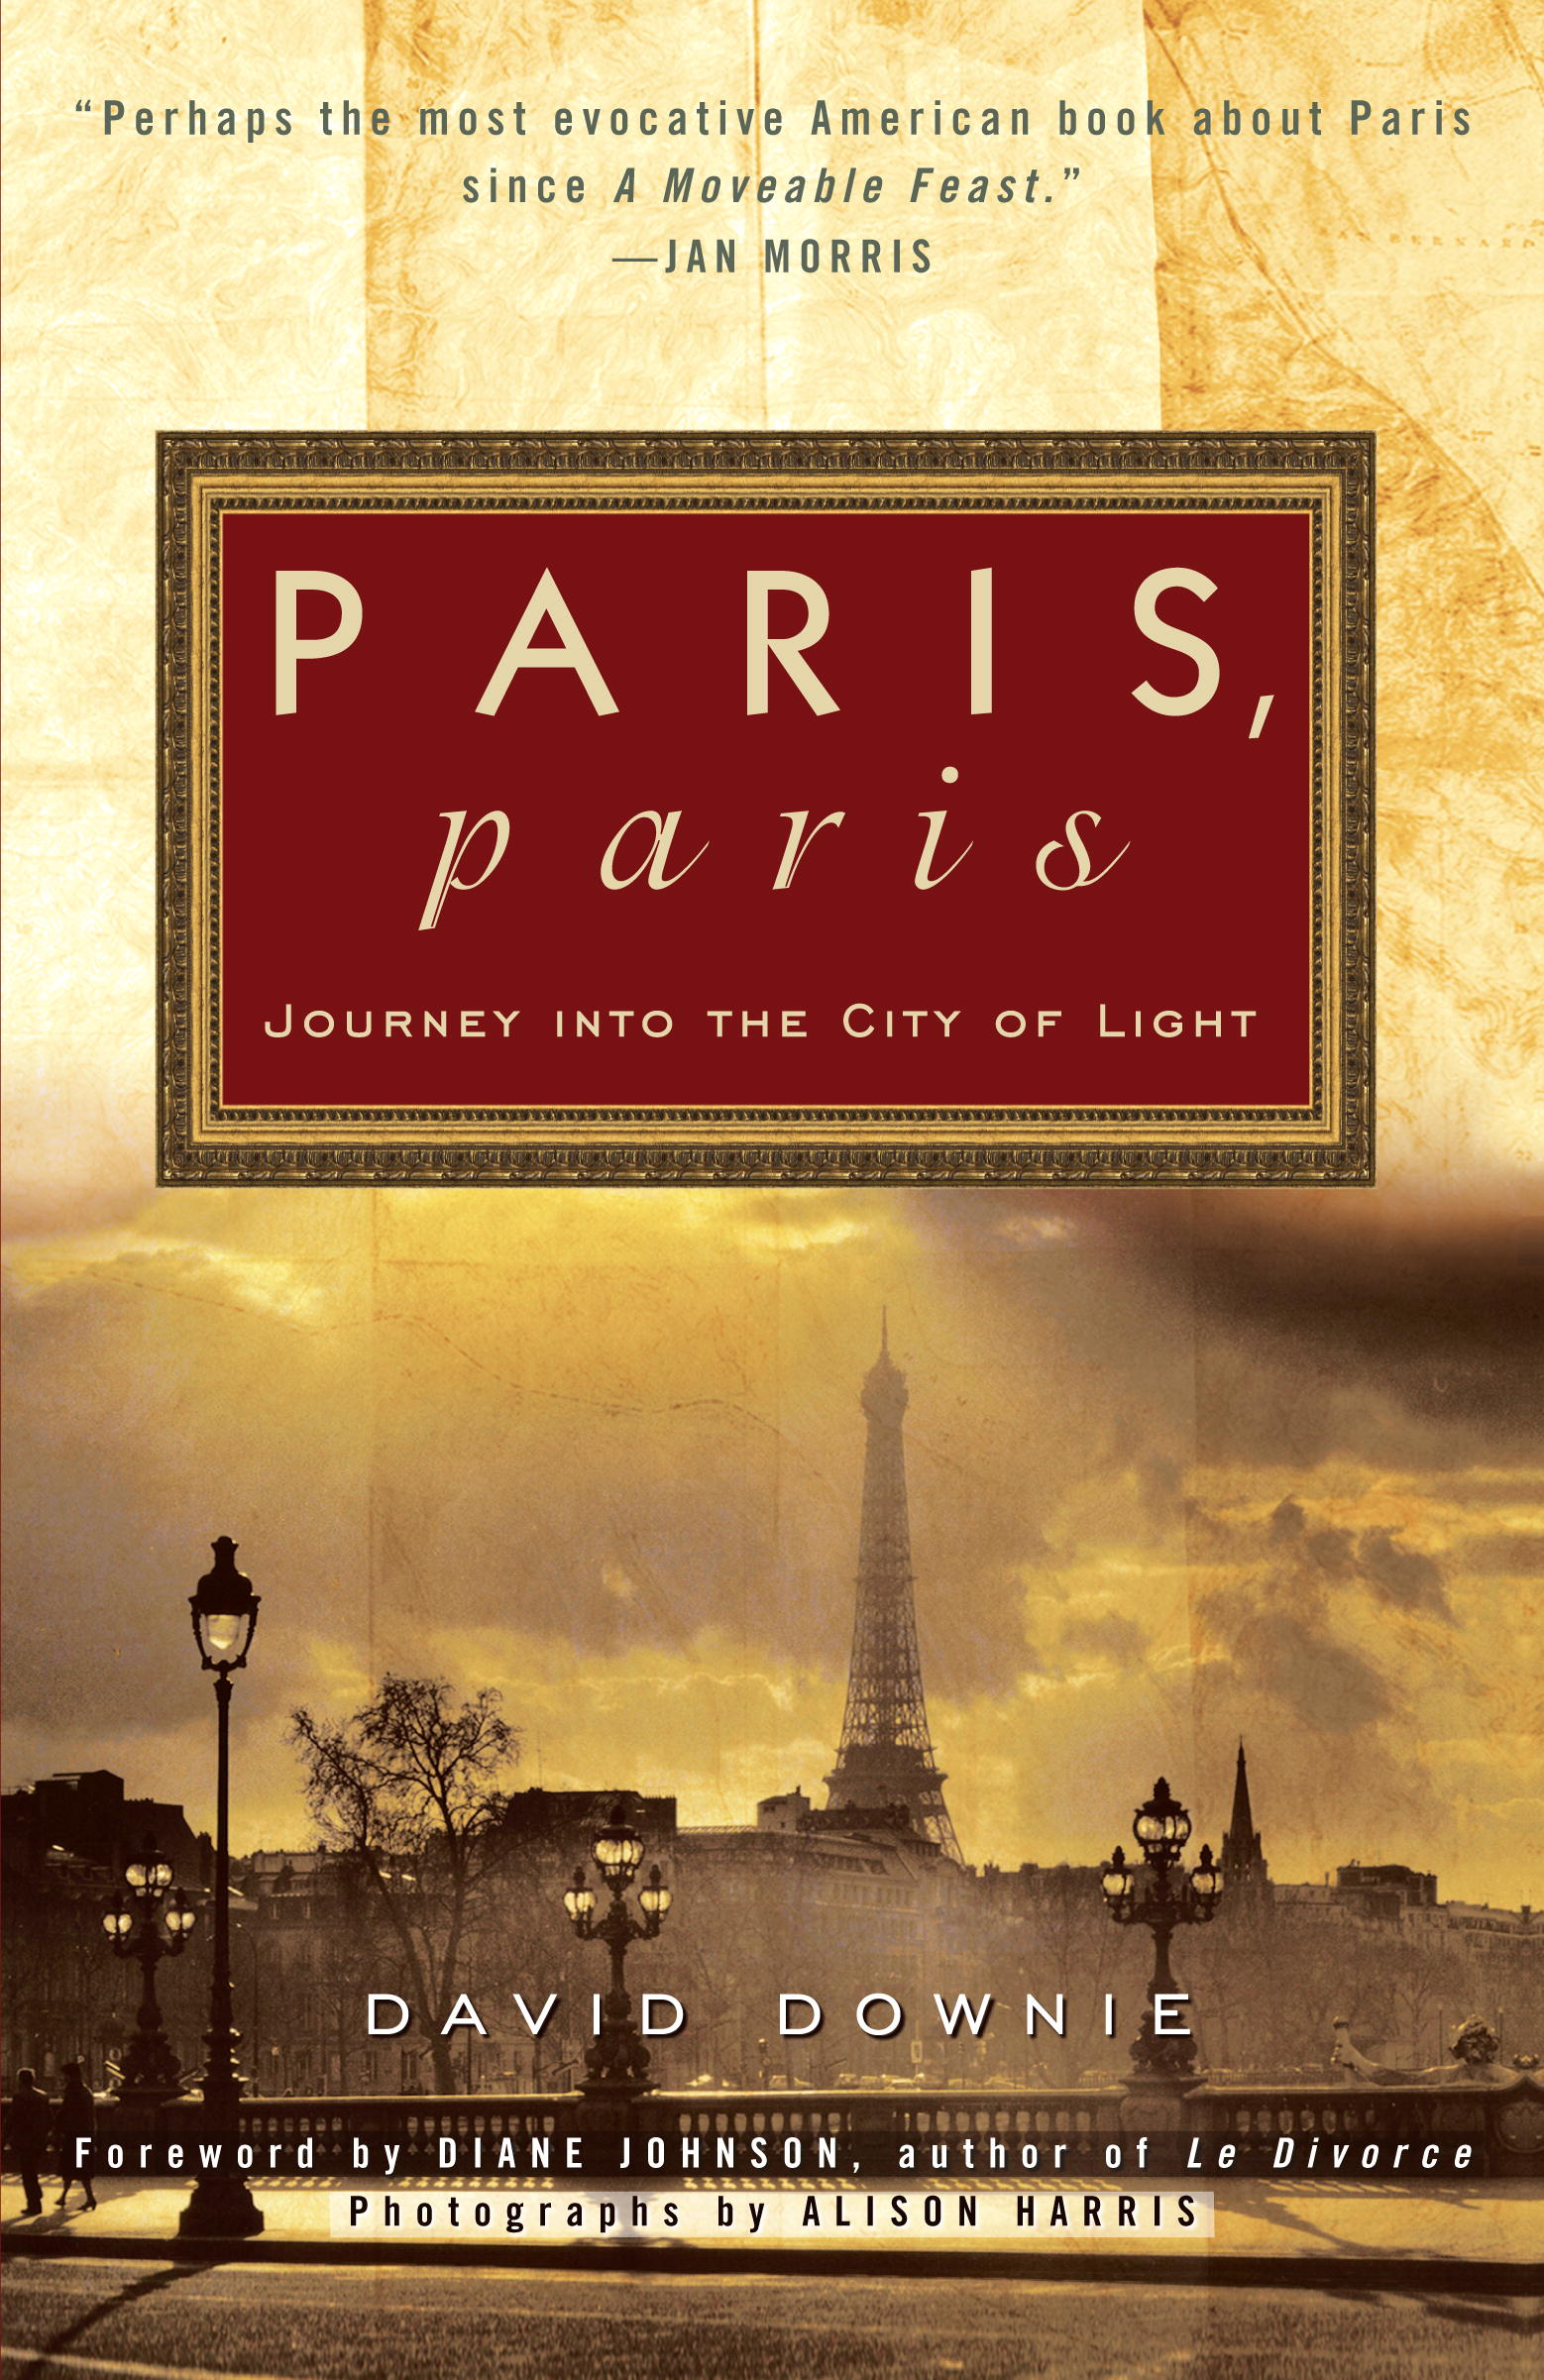 paris journey into city light